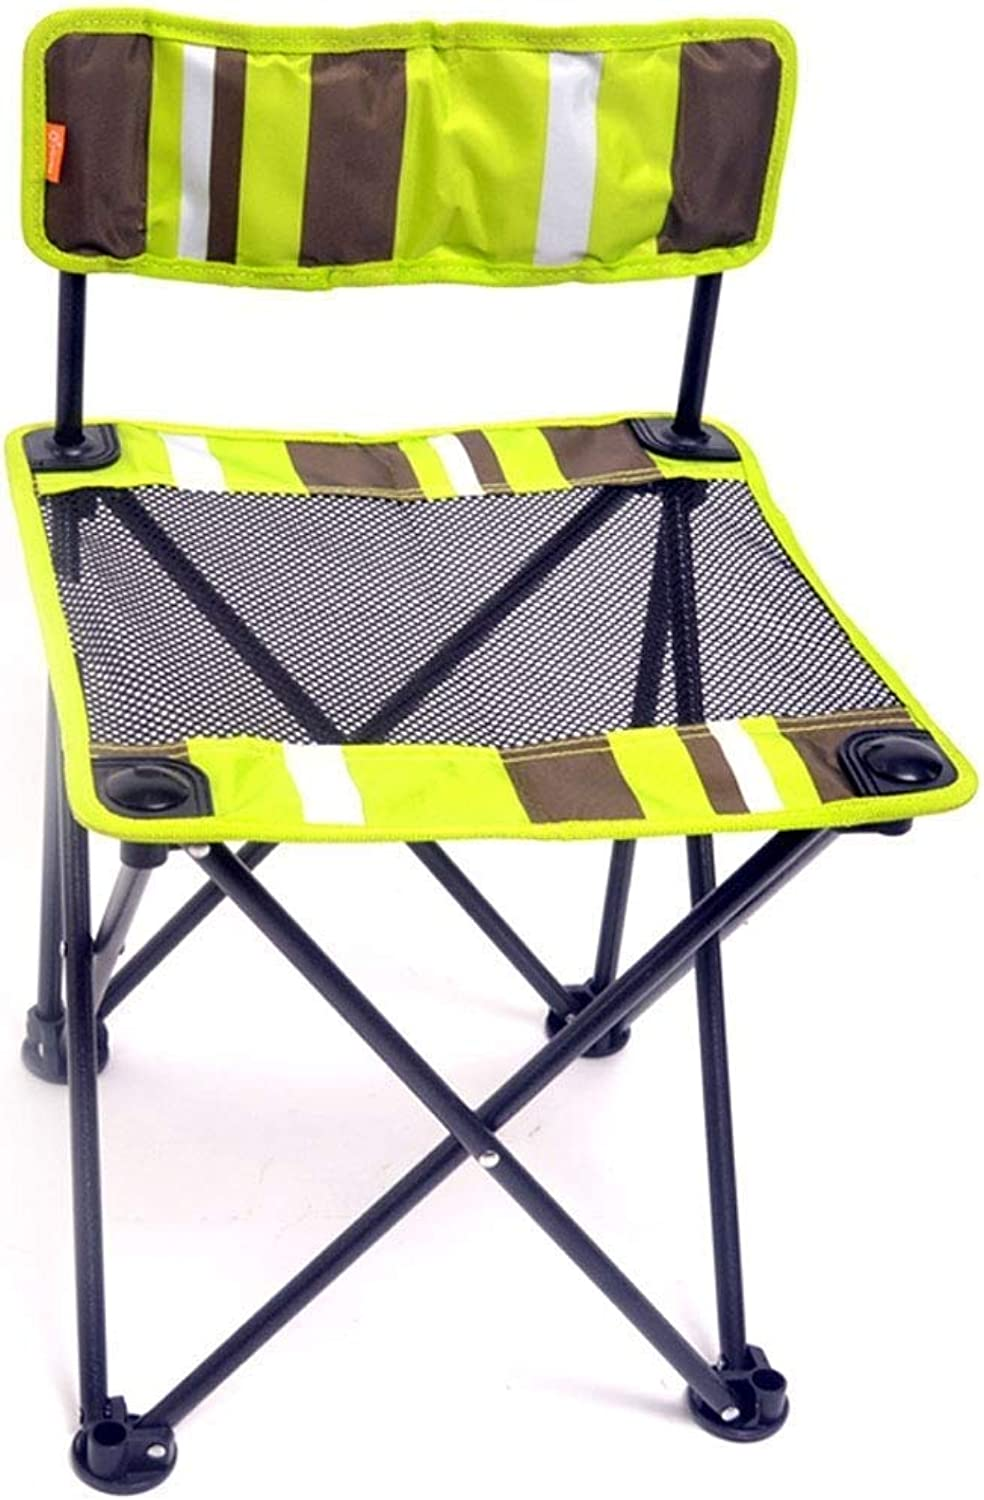 Small Mesh Folding Chair Portable Outdoor Student Painting Sketch Chair Oxford Cloth Leisure Fishing Chair JINRONG (color   Black)